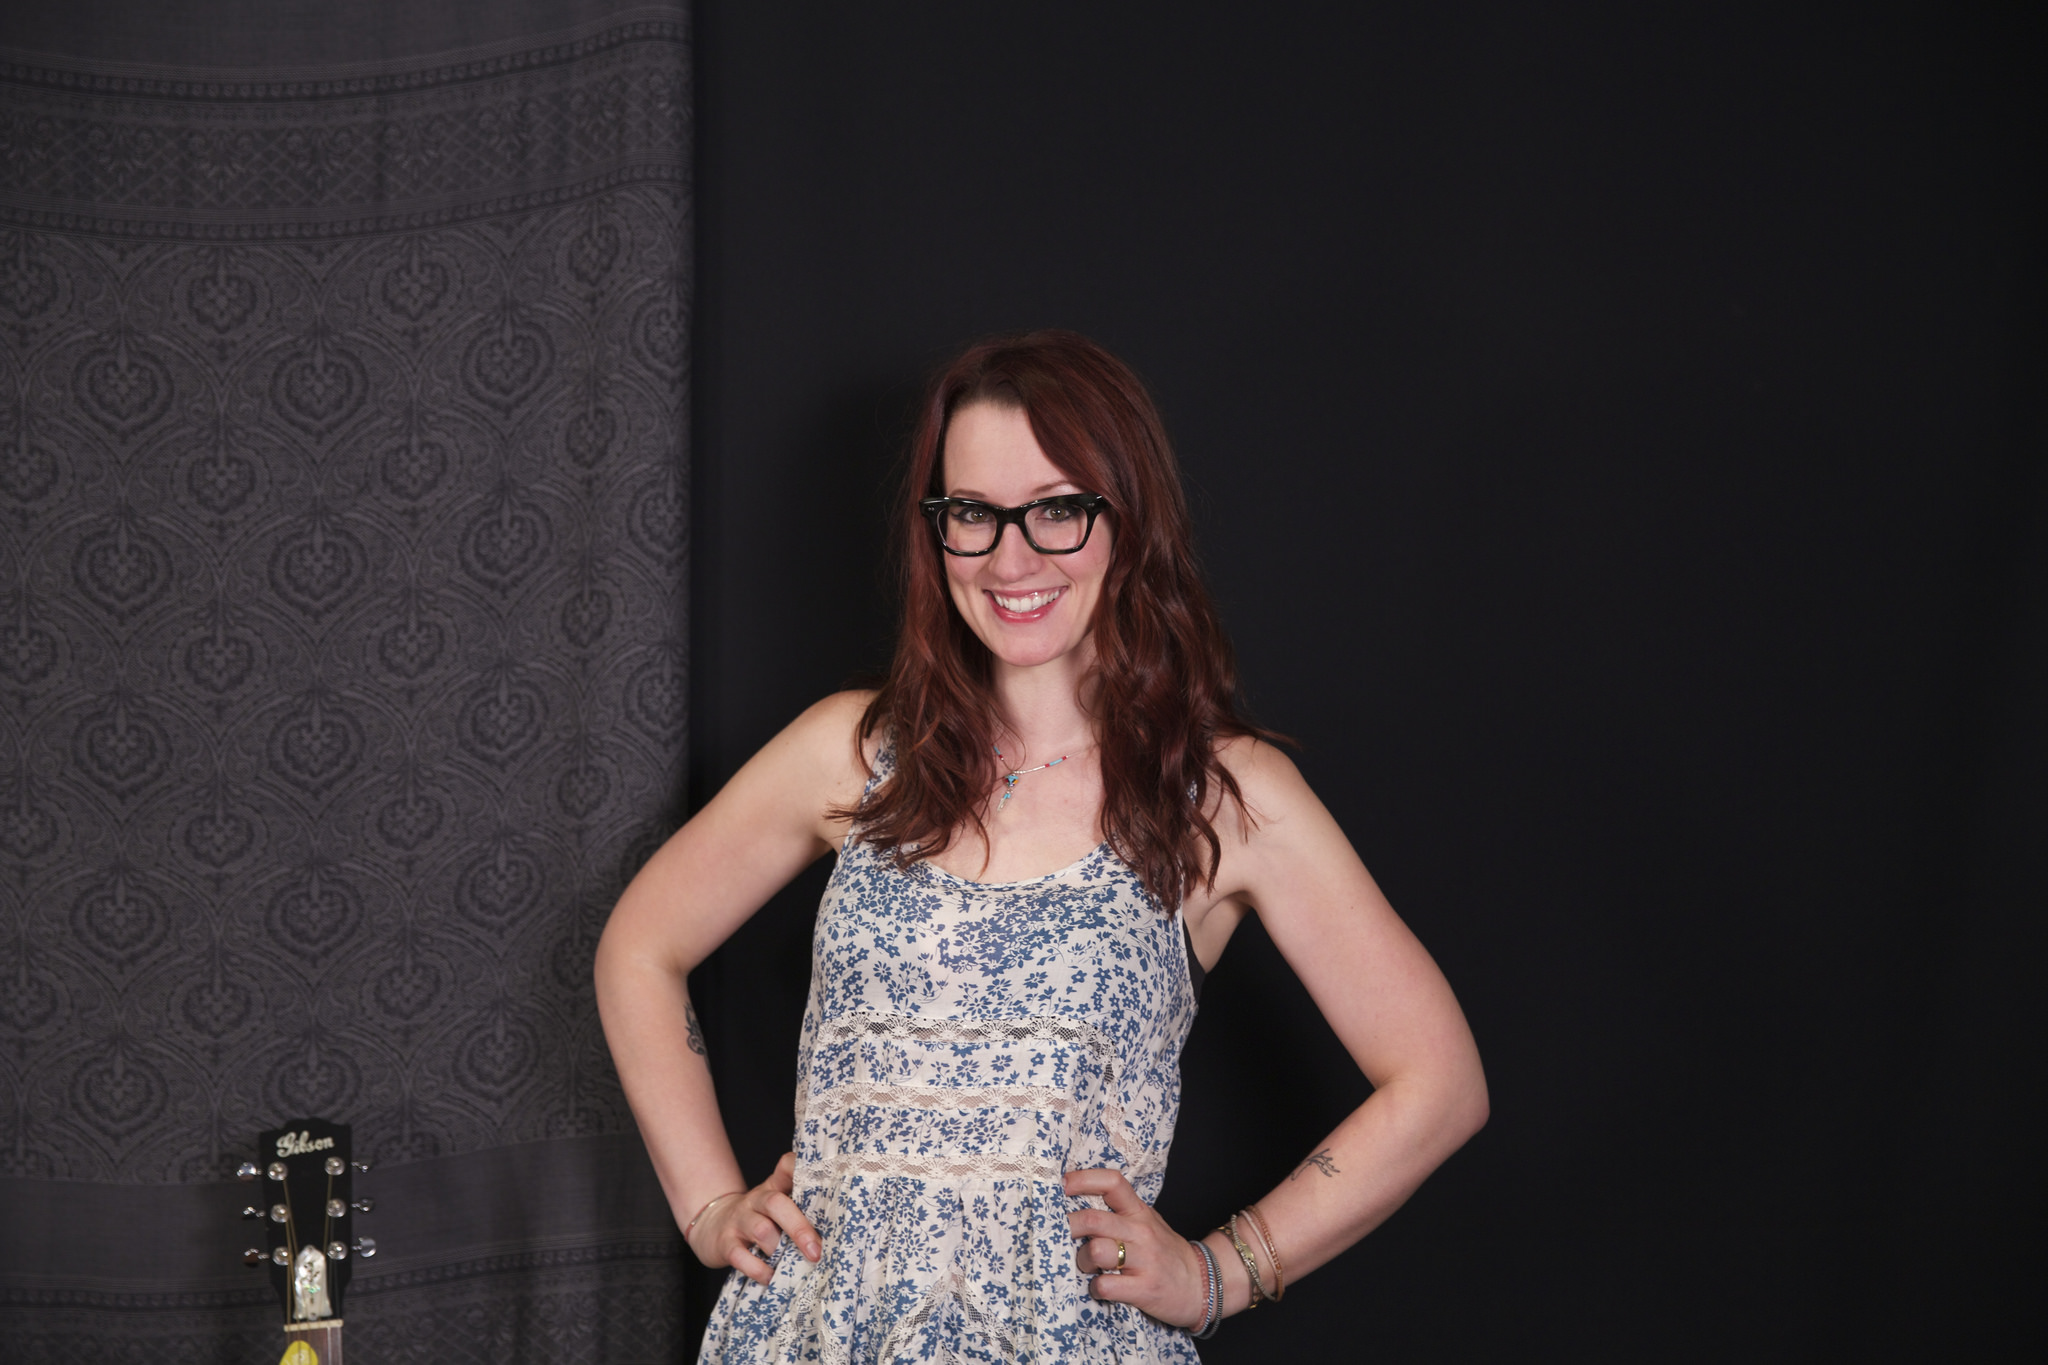 Hear an FUV Live session with Ingrid Michaelson tonight at 9.